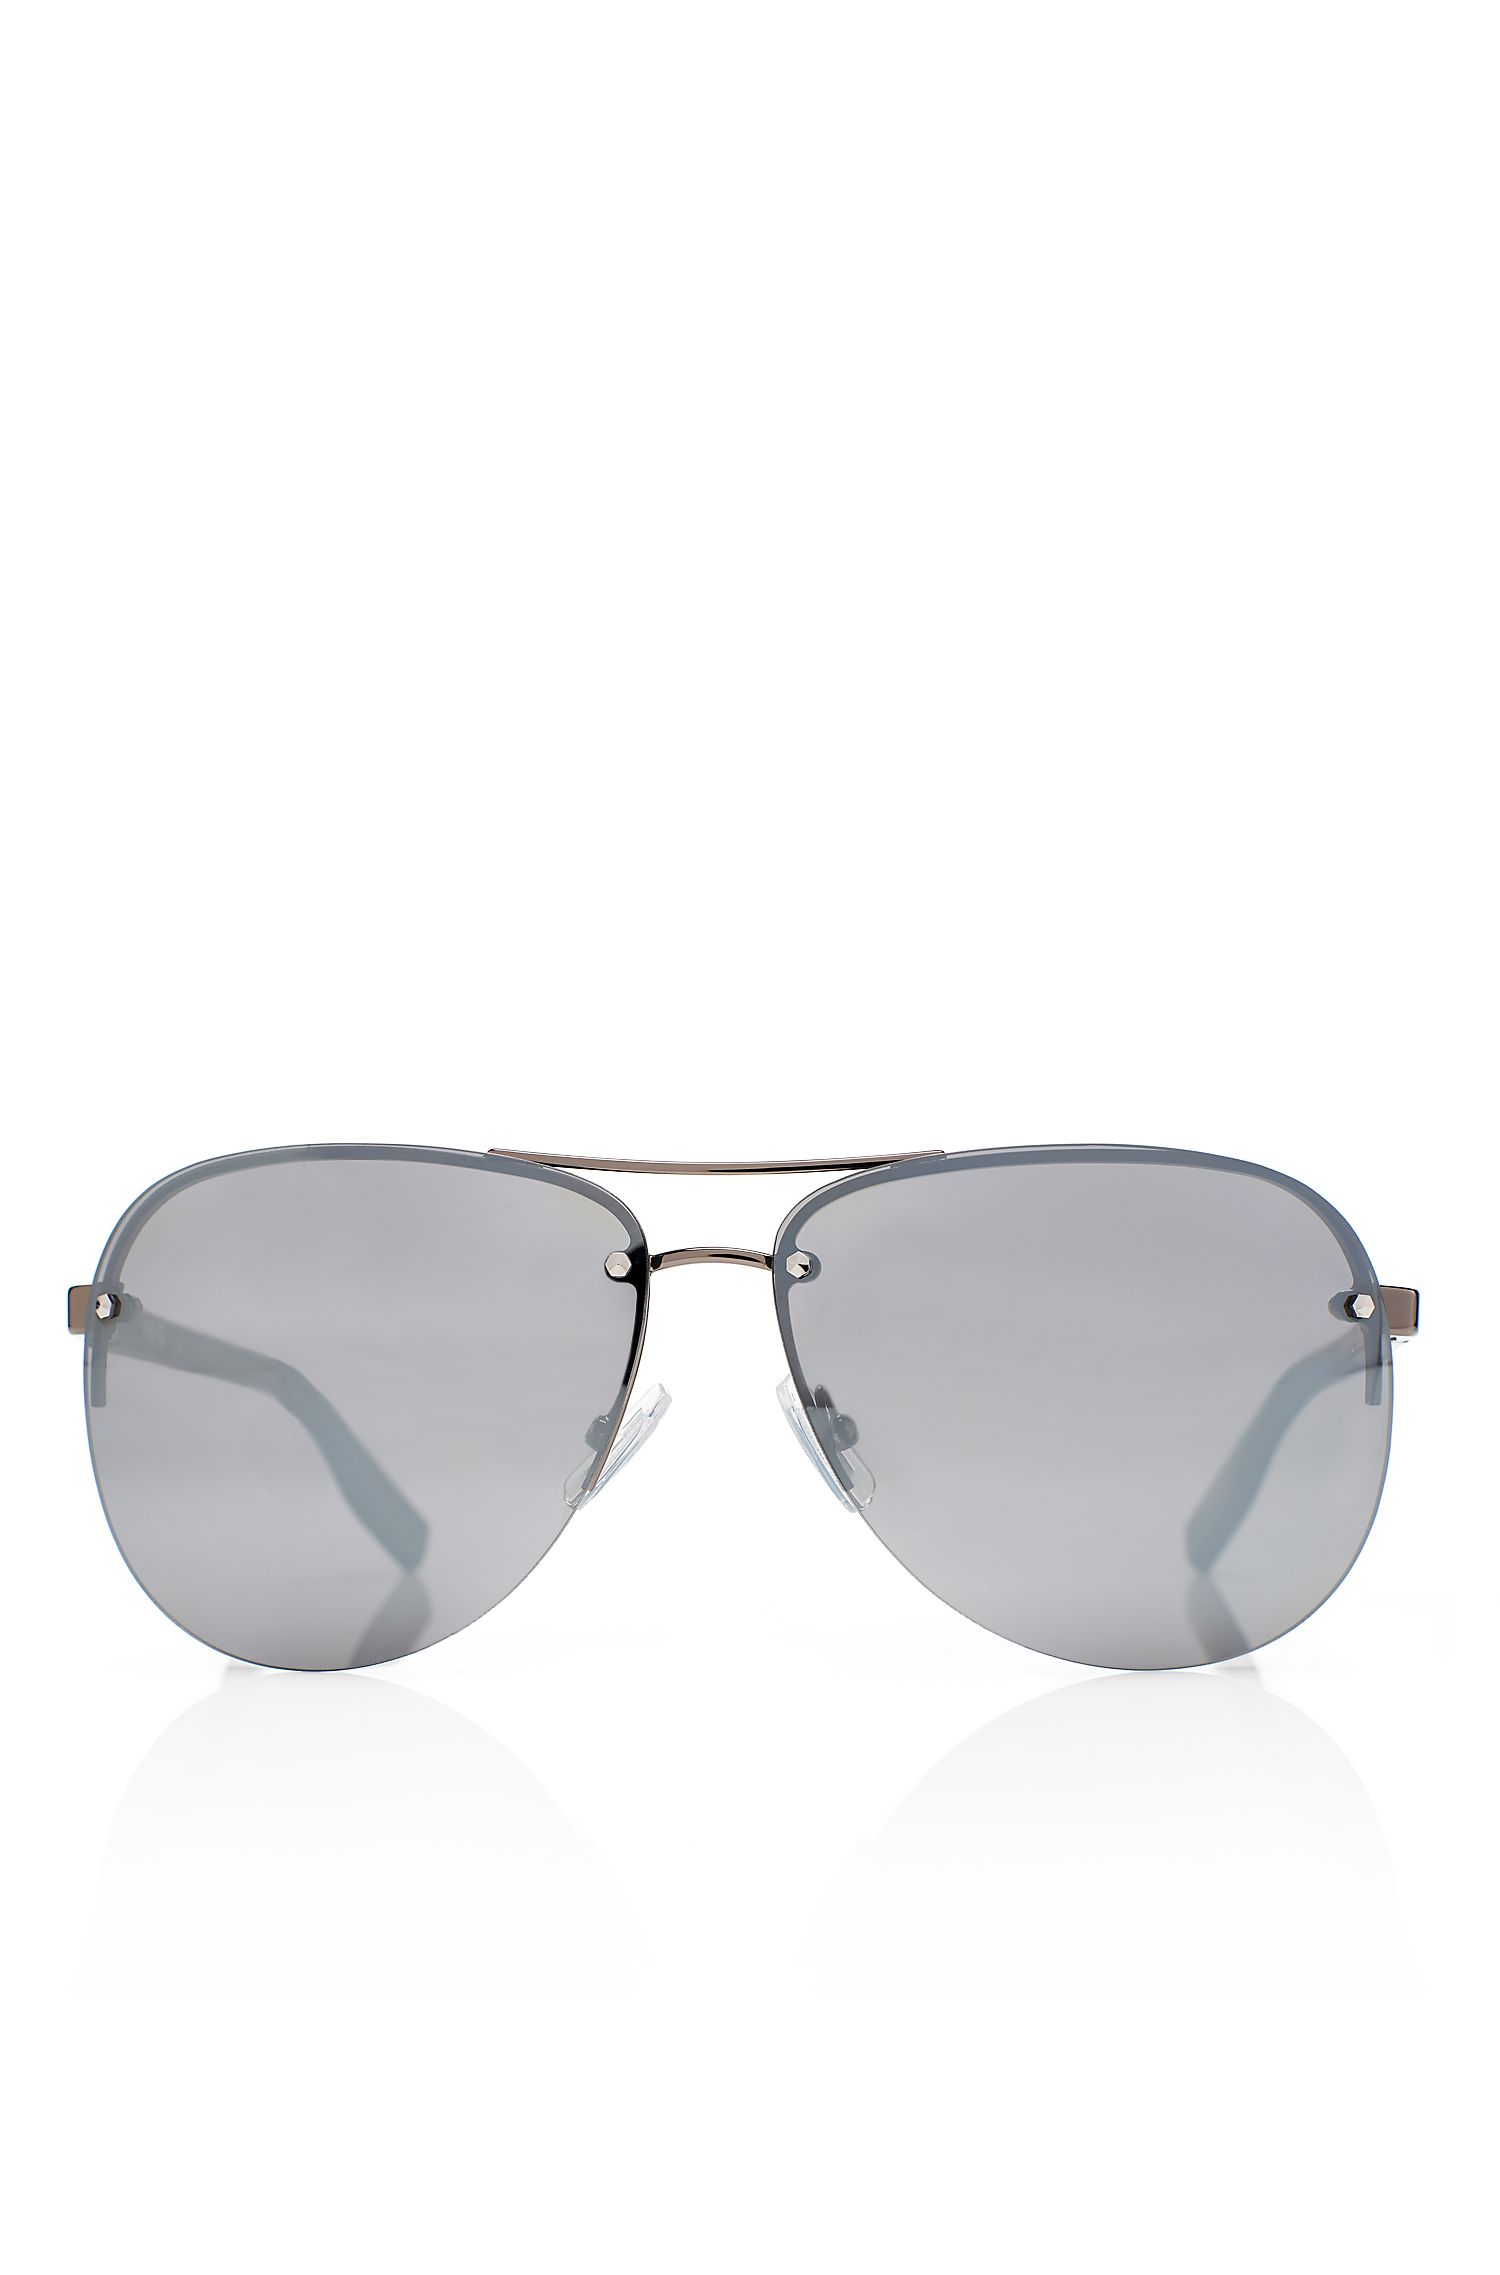 'Sunglasses' | Matte Black Rimless Aviator Sunglasses